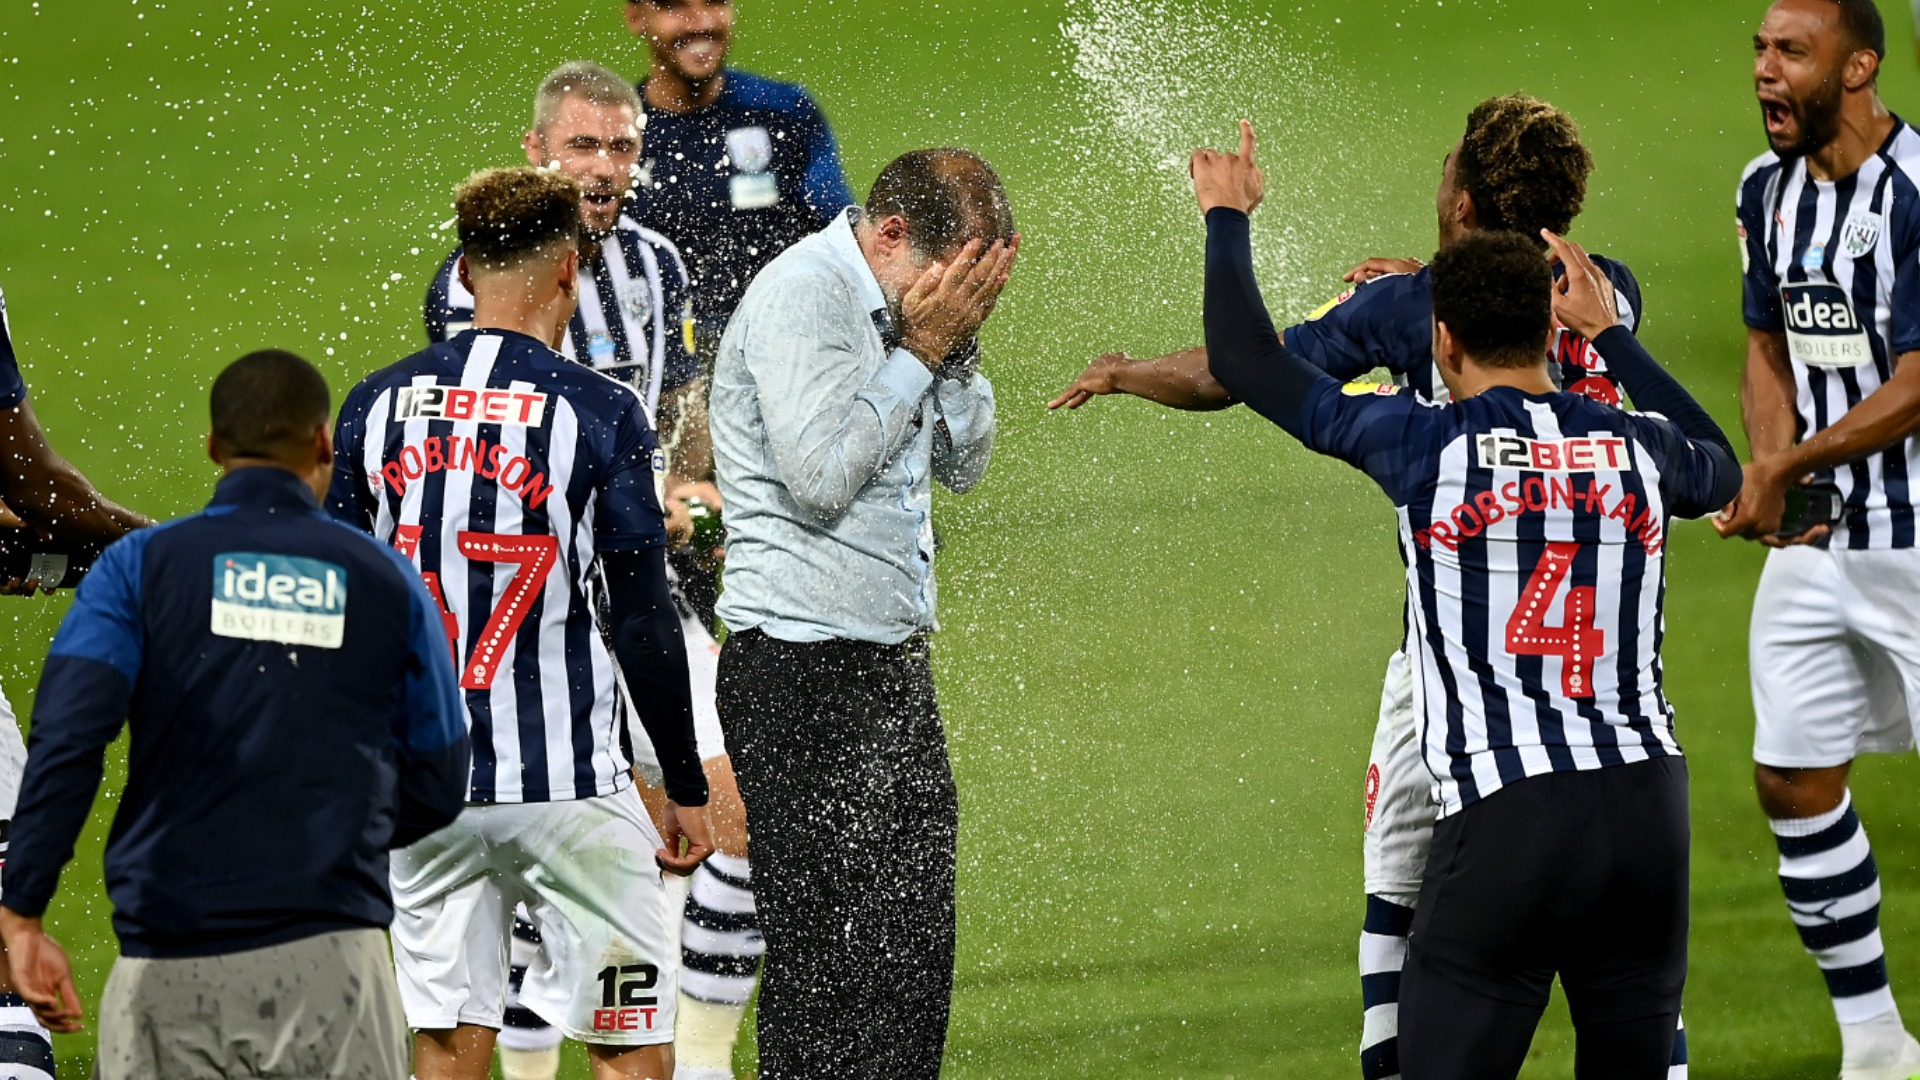 Championship: West Brom pip Brentford to promotion, Wigan relegated on dramatic final day